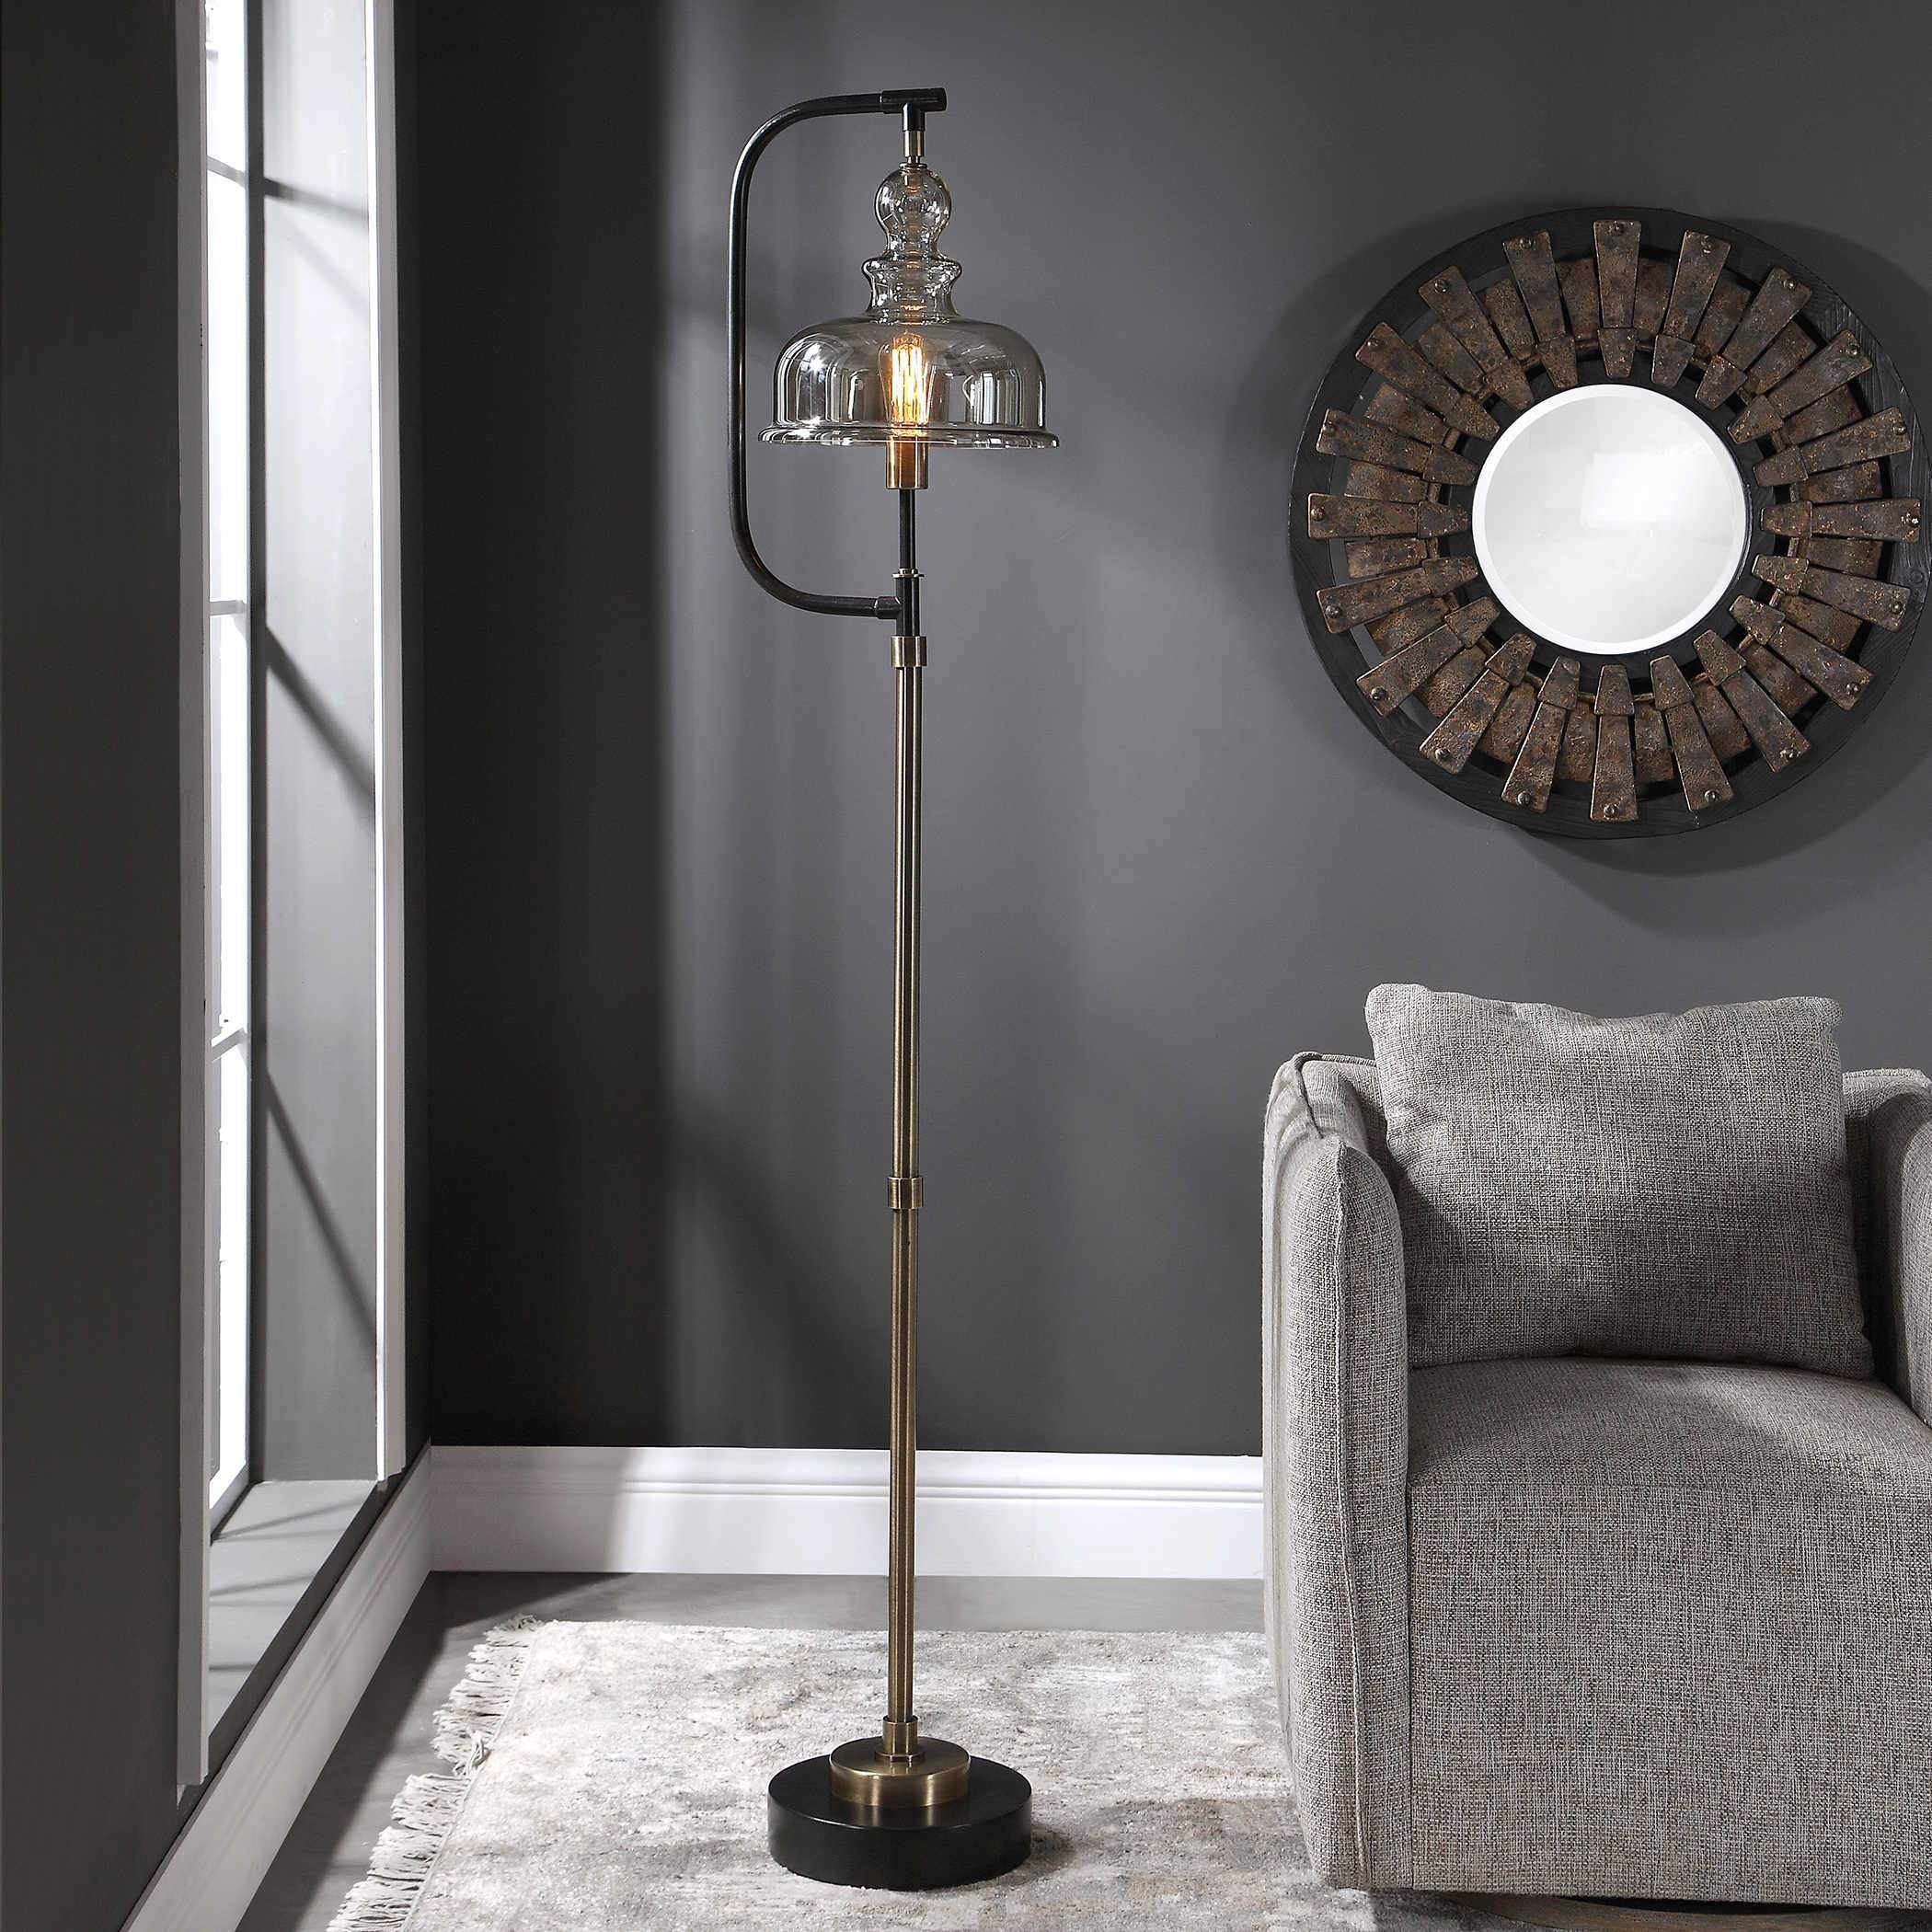 Uttermost Elieser Floor Lamp; AVAIL: MAY 01, 2021